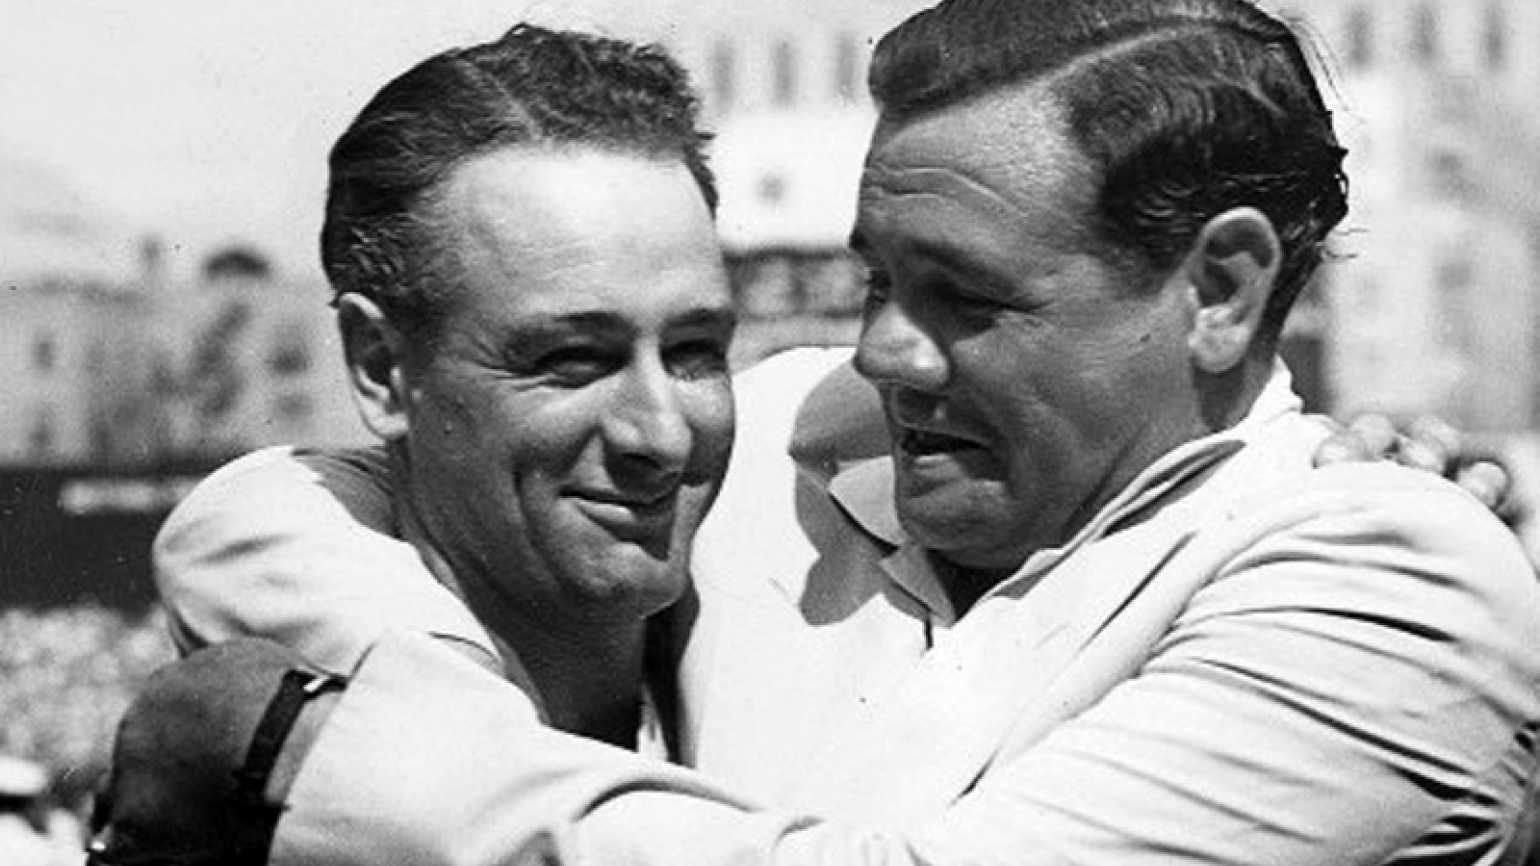 Lou Gehrig and Babe Ruth